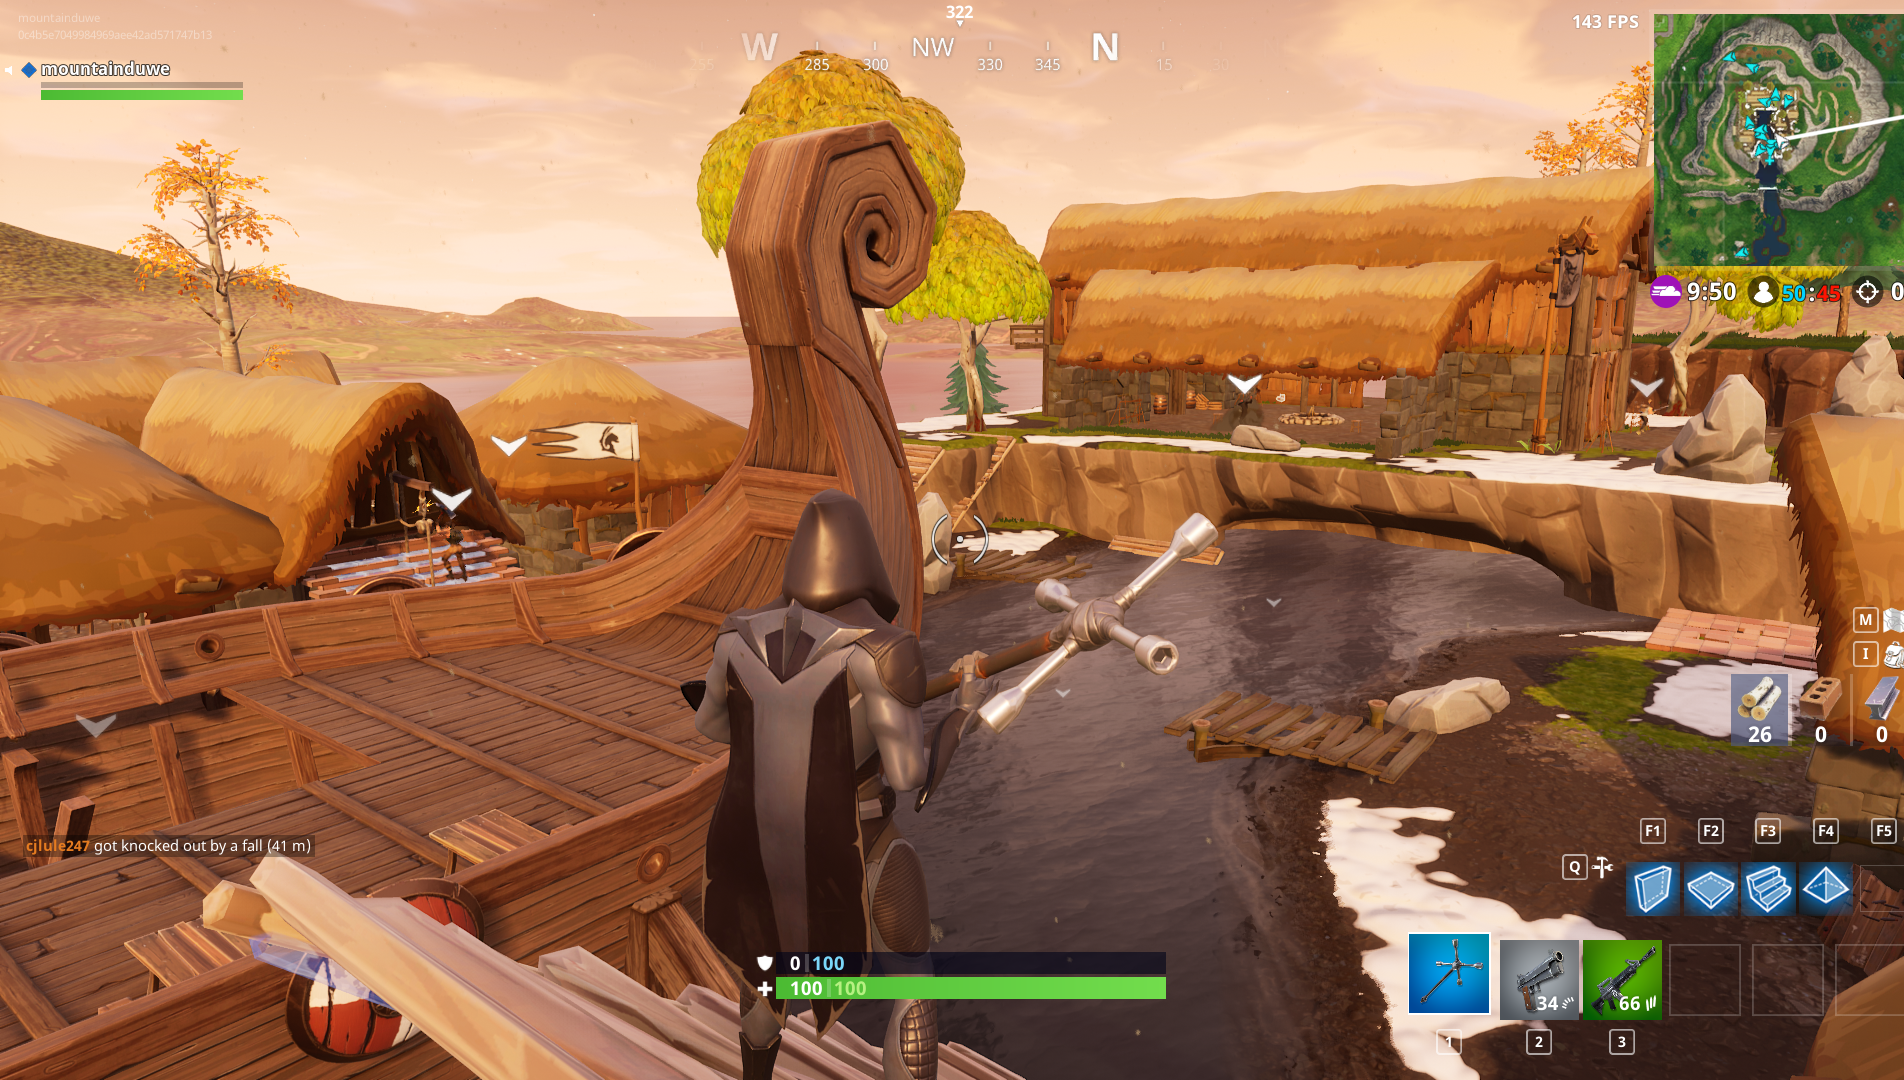 the new points of interest on fortnite s map for season 5 are beautiful - fortnite risky reels return